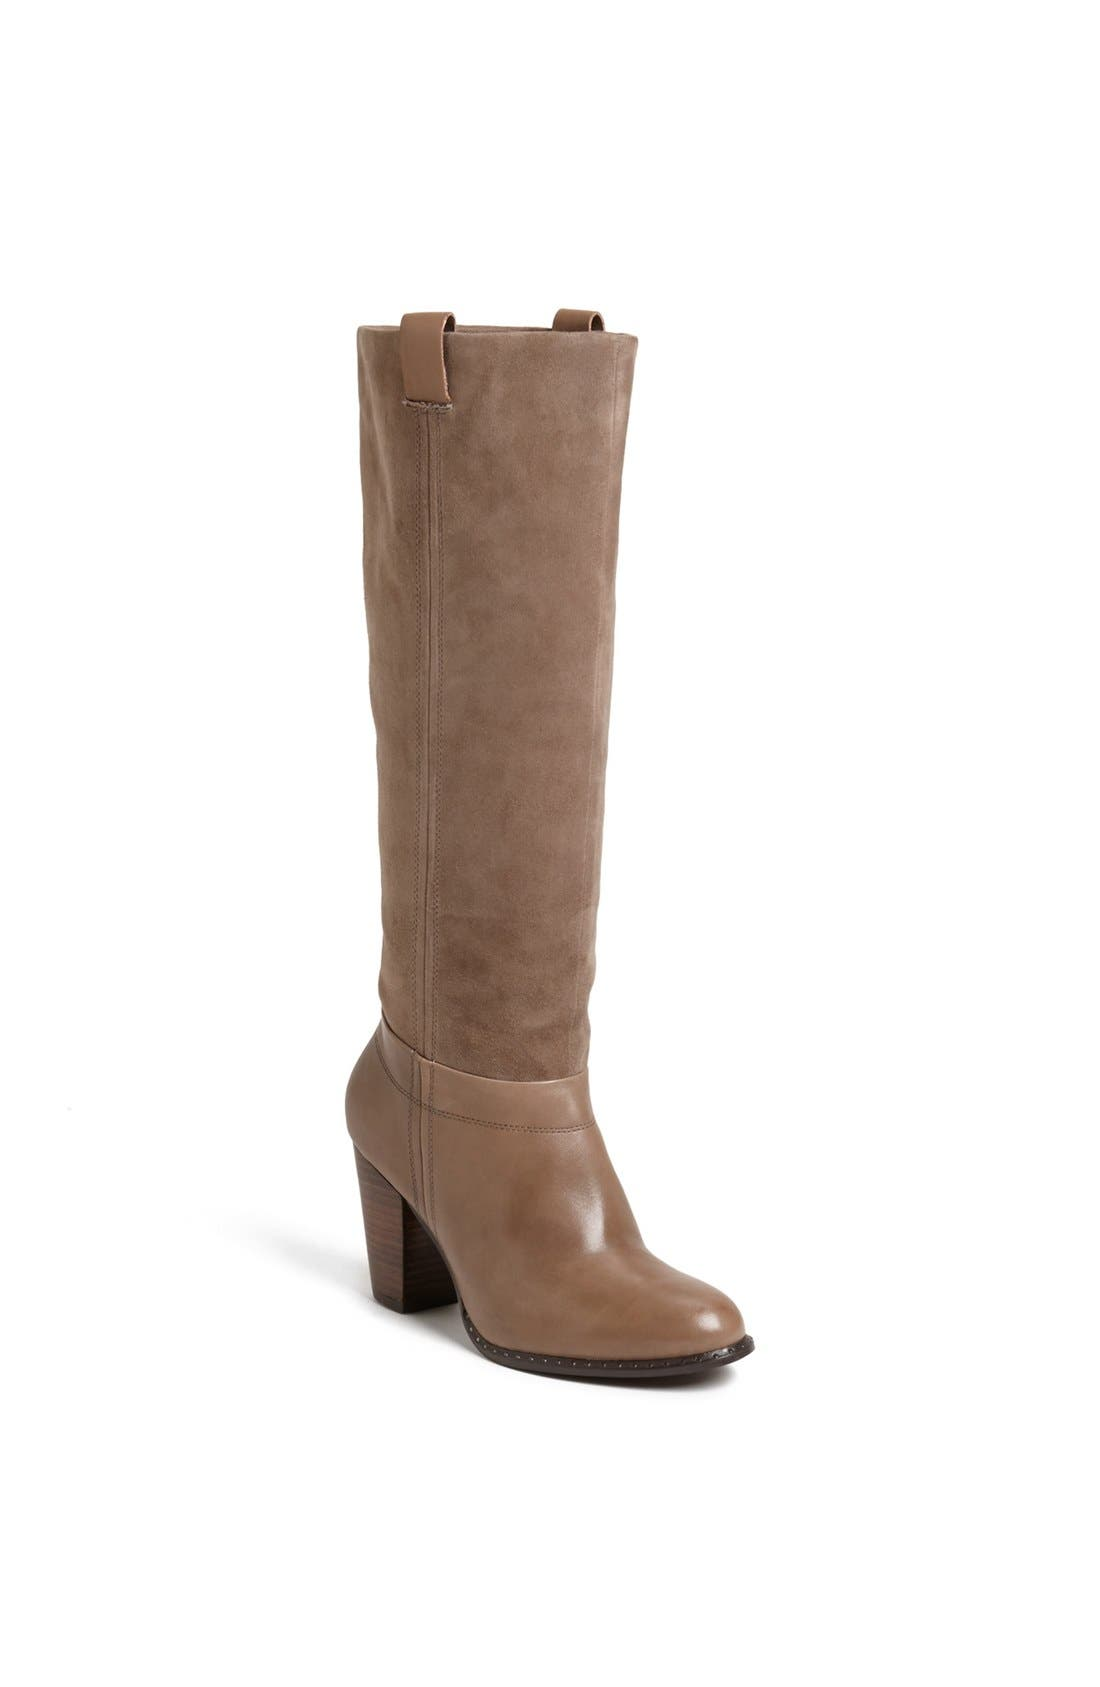 Alternate Image 1 Selected - Splendid 'Fairview' Suede & Leather Boot